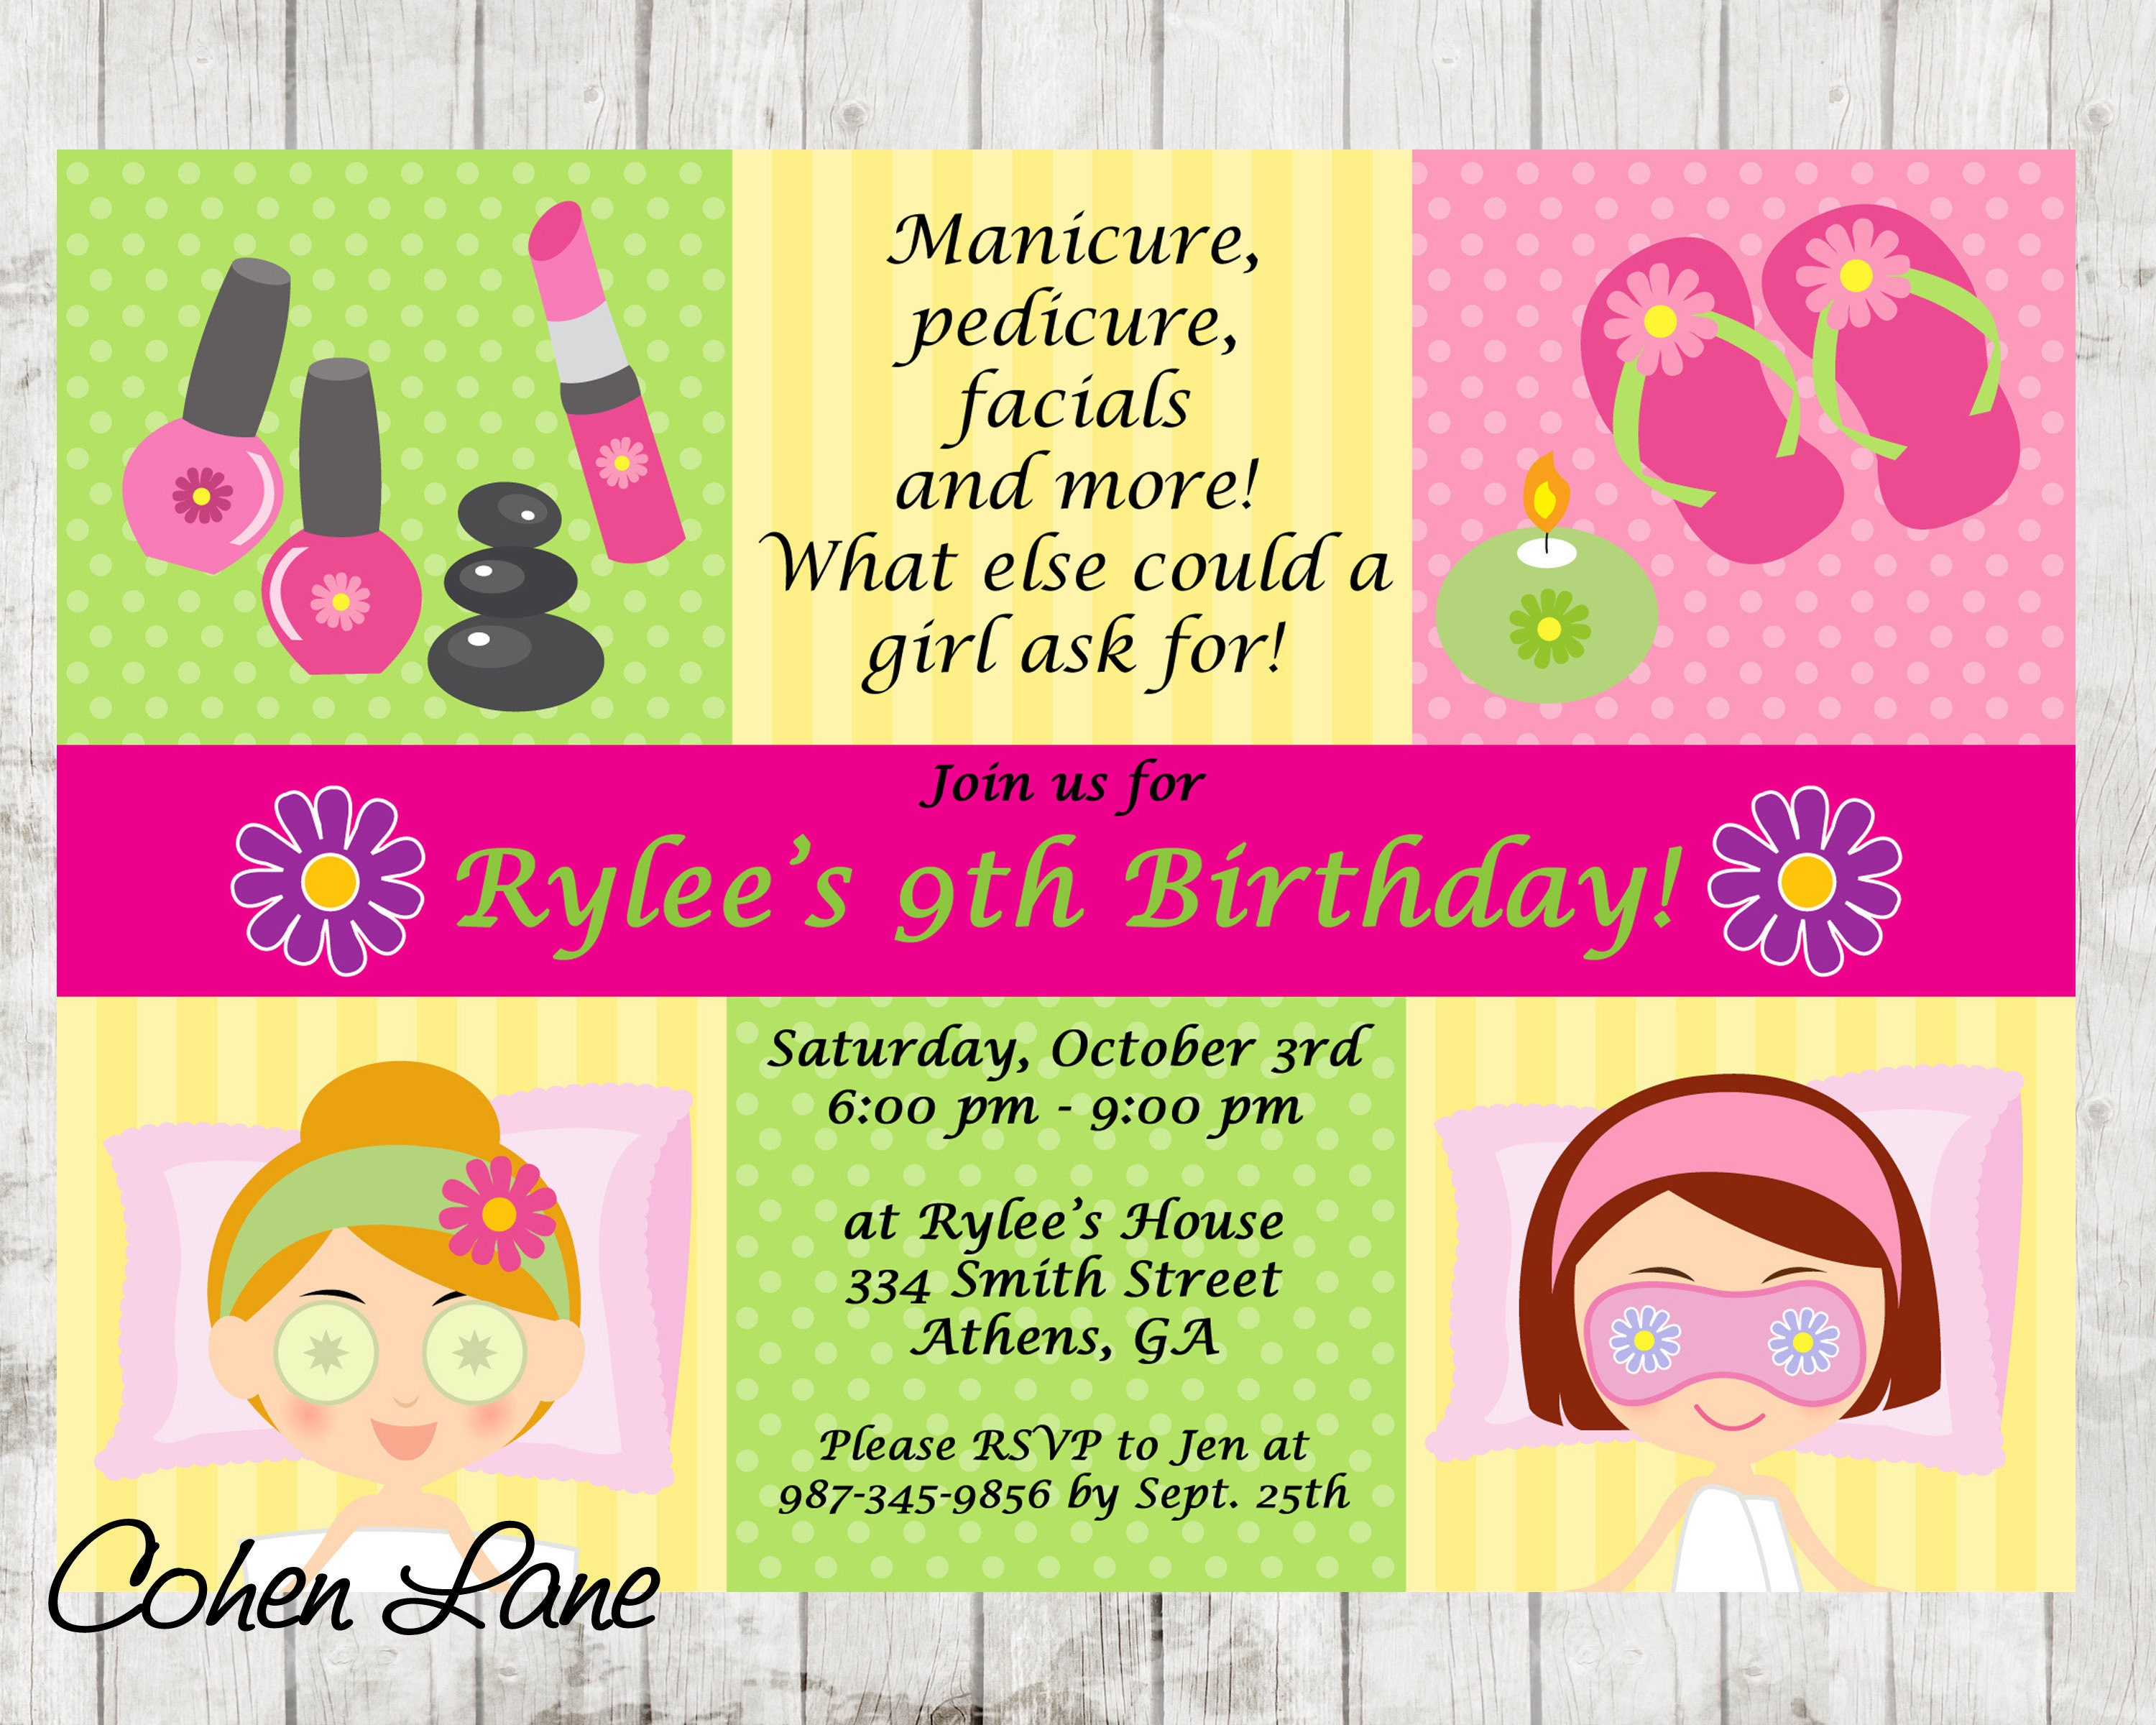 Spa Sleepover Party Invitations gender reveal party invitation – Spa Slumber Party Invitations